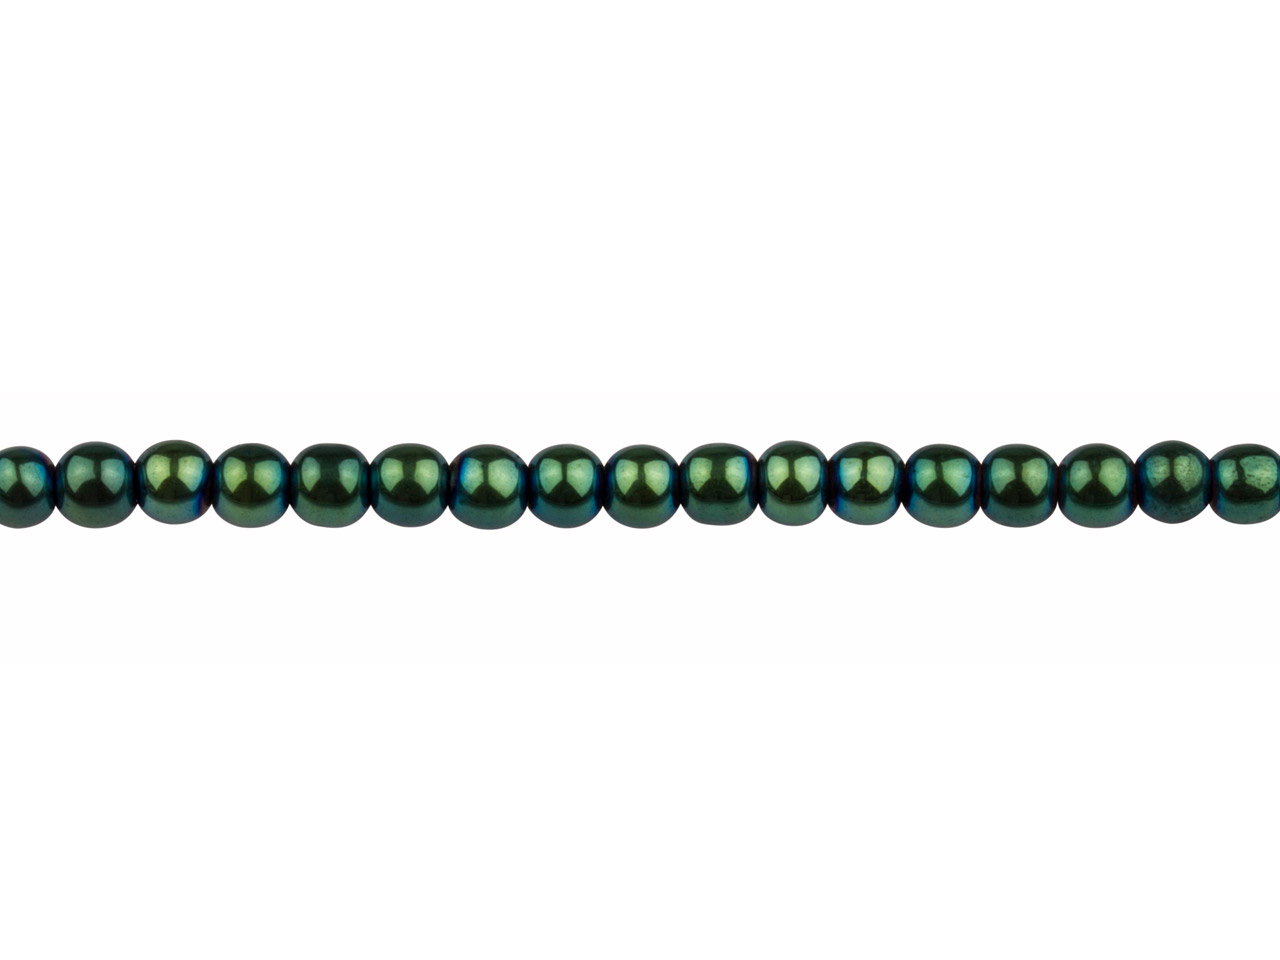 Electroplated Hematite Semi        Precious Round Beads, Green, 4mm,  16